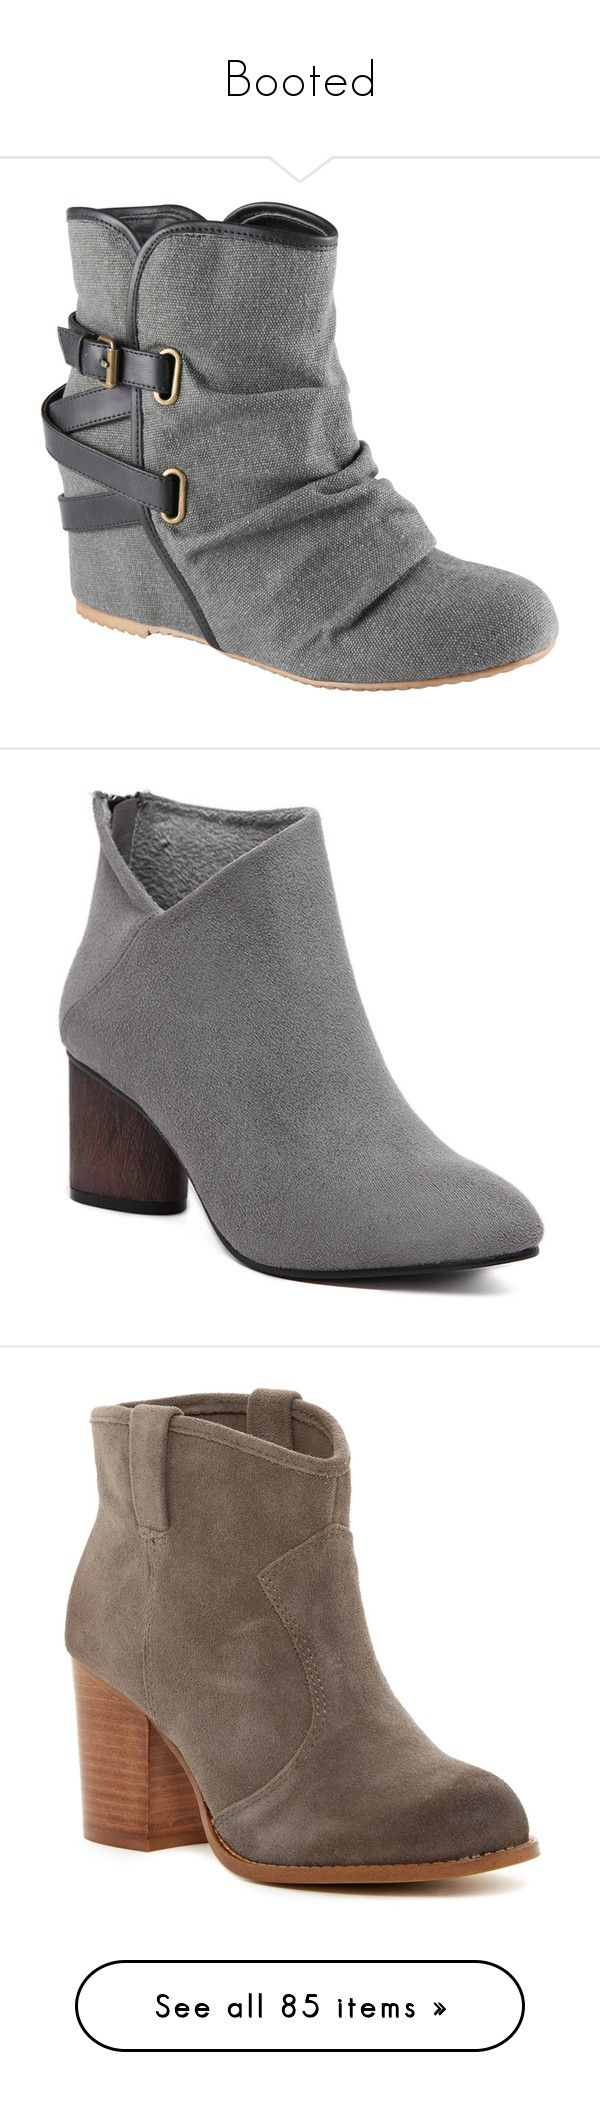 """""""Booted"""" by mrseclipse ❤ liked on Polyvore featuring shoes, boots, grey, sapatos, zapatos, rounded toe boots, hidden wedge boots, aldo, grey shoes and round cap"""